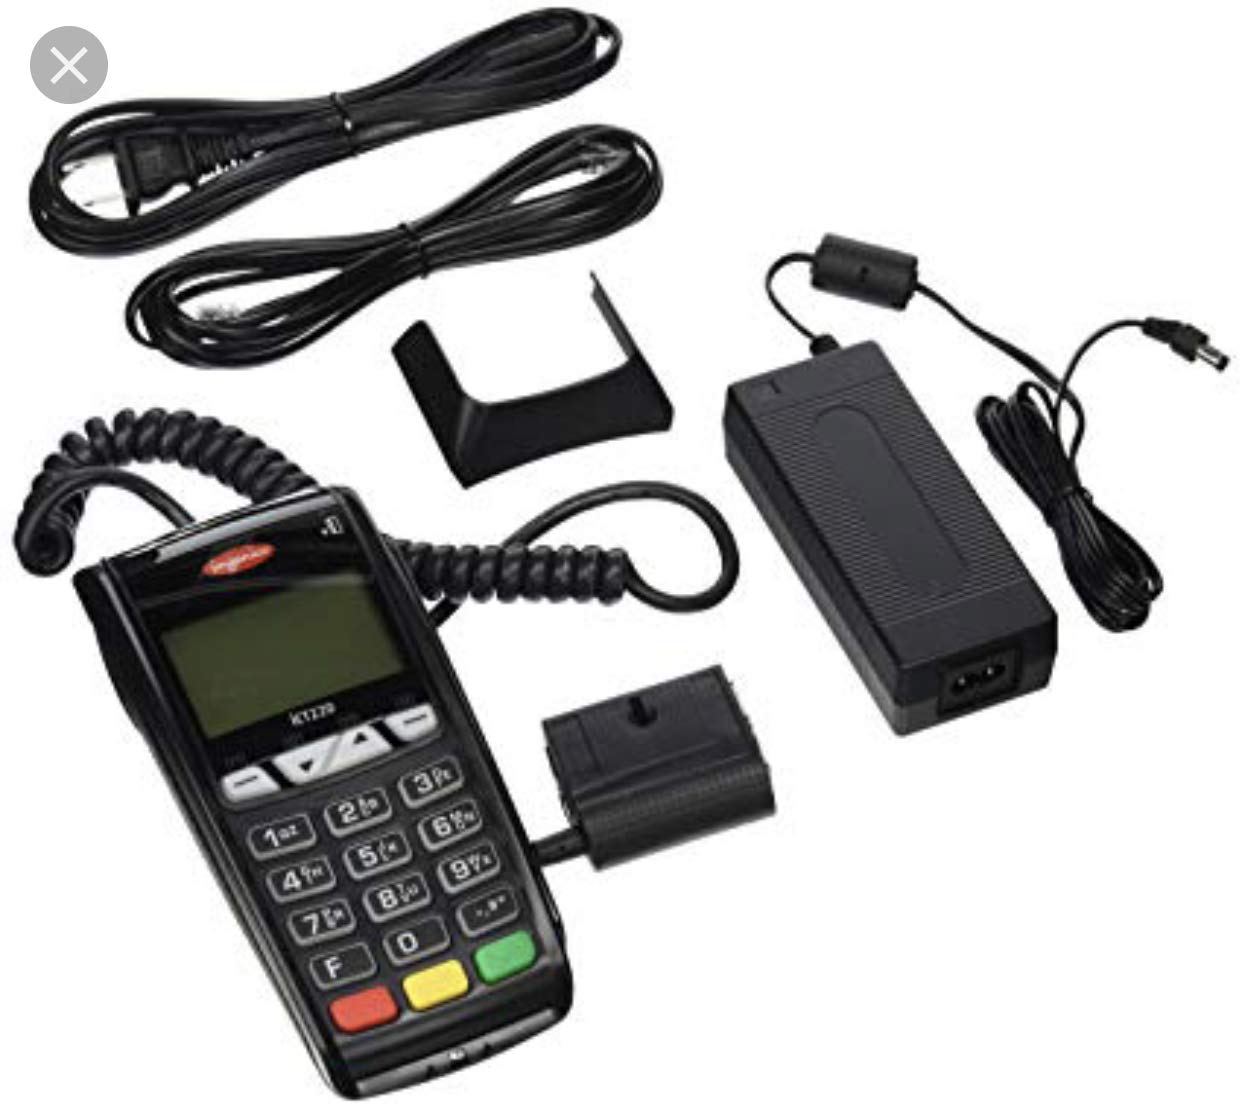 ELAVON Compatible Ingenico ICT220 Dual Com Terminal with Apple Pay and EMV/Smart Card Reader